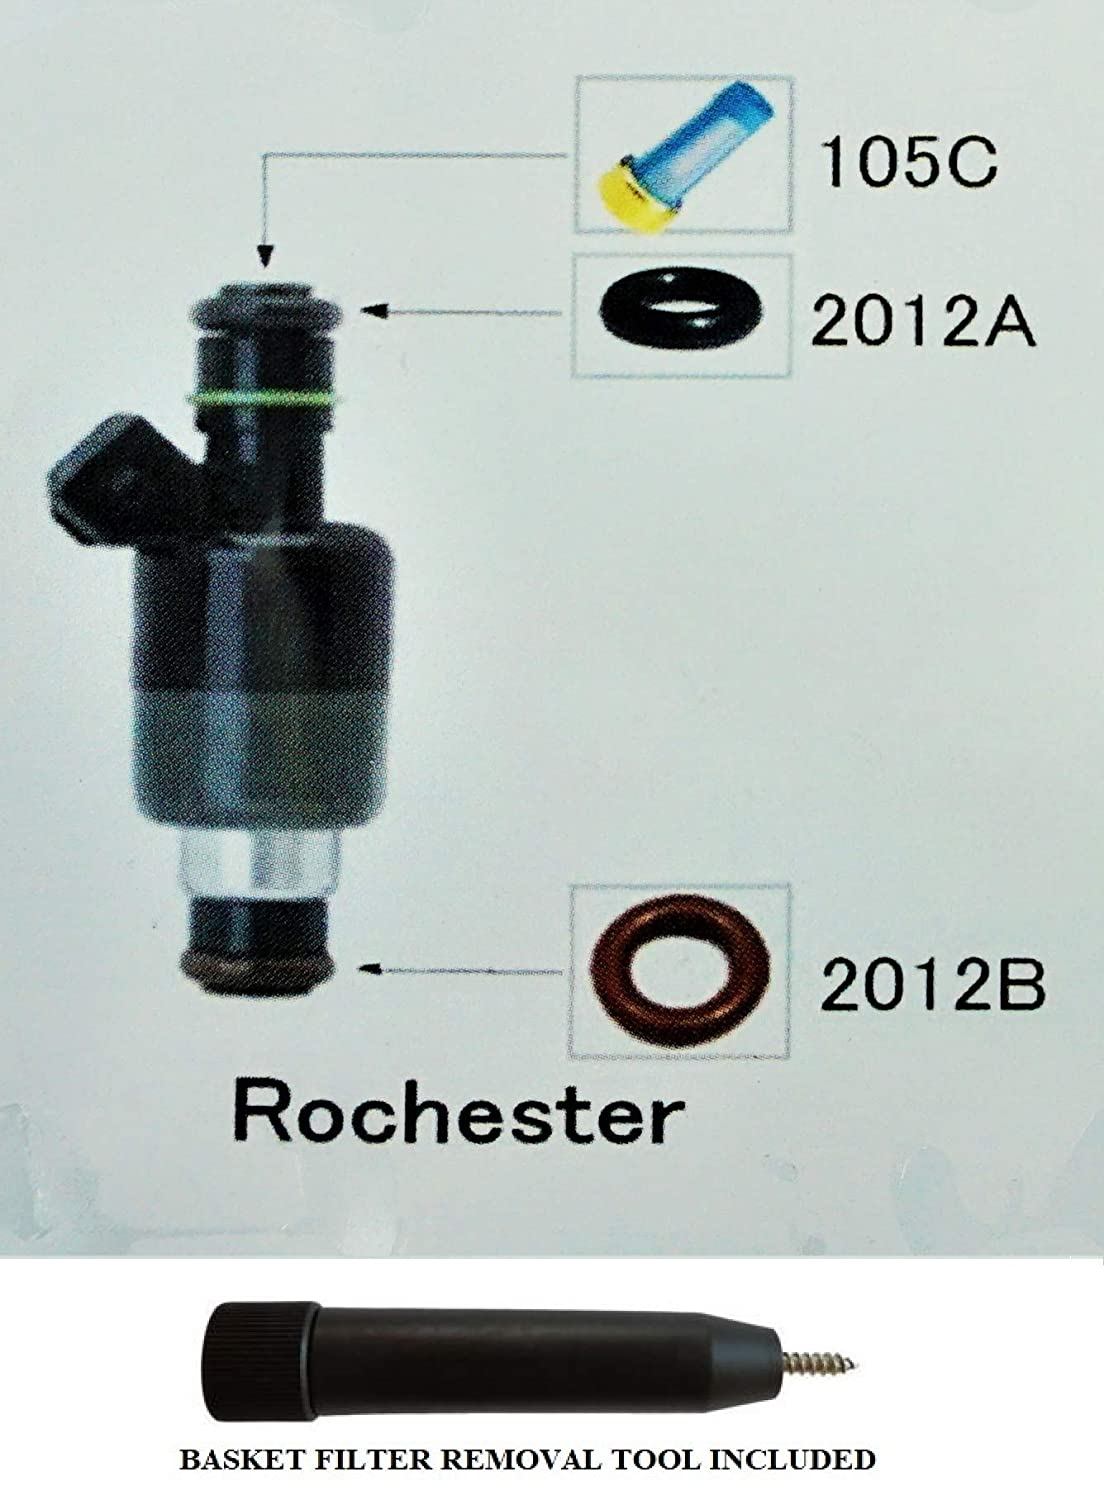 Fuel Injector Rebuild Kit for ROCHESTER with Optional Filter Removal Tool Complete